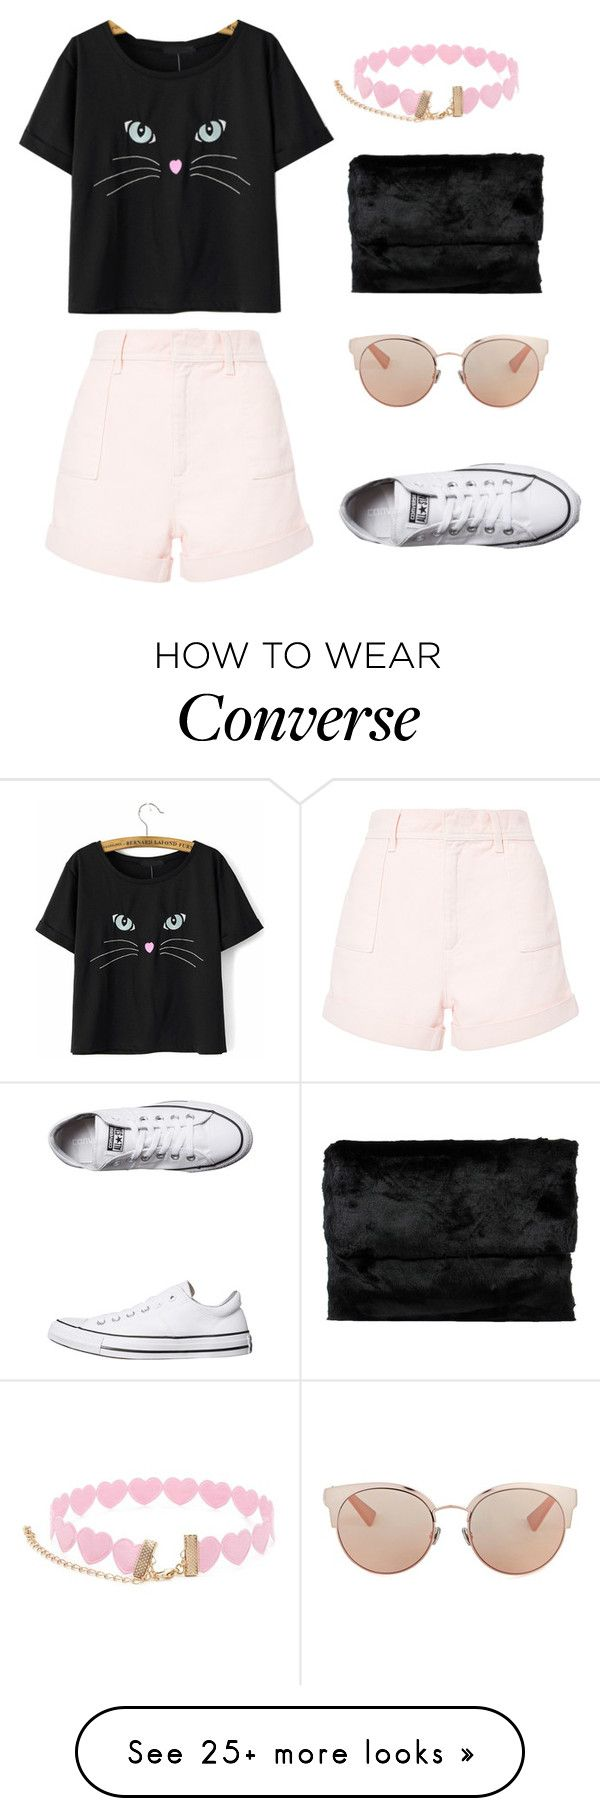 """Button nose"" by sunshine1877 on Polyvore featuring Philosophy di Lorenzo Serafini, Forever 21, Oui, Odile!, Converse and Christian Dior"